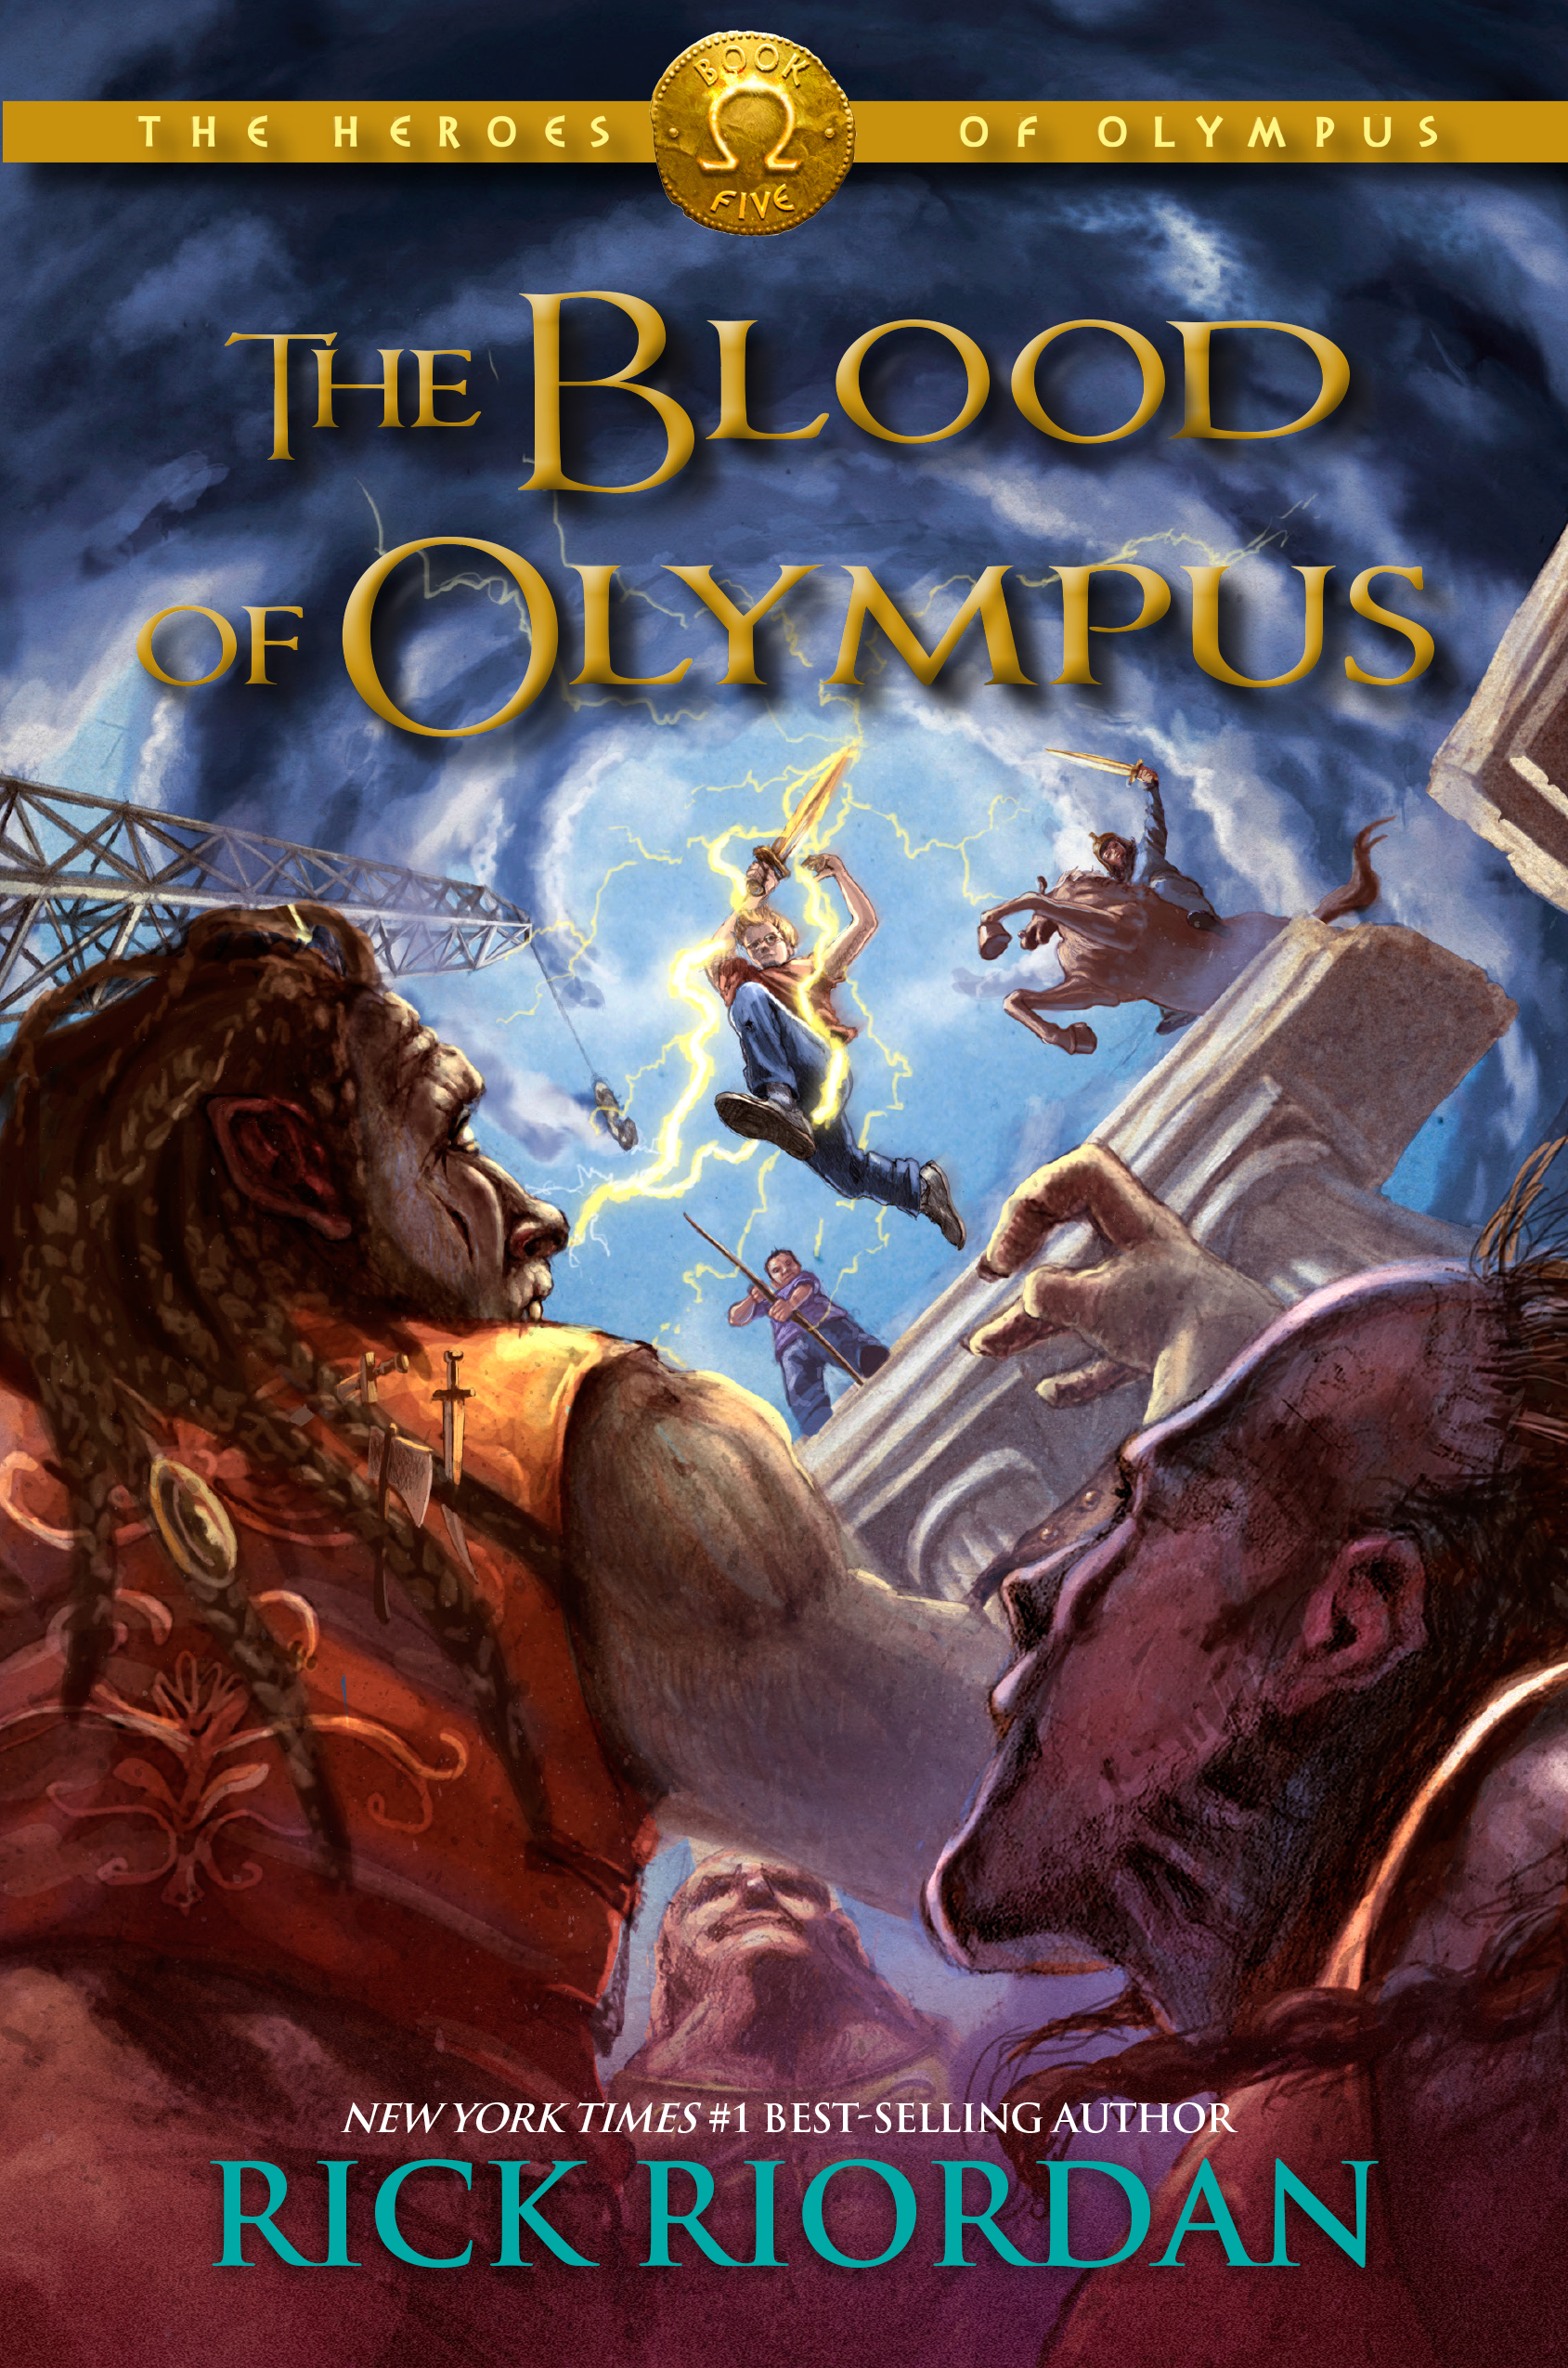 Cover Image of The Heroes of Olympus,Book Five: The Blood of Olympus